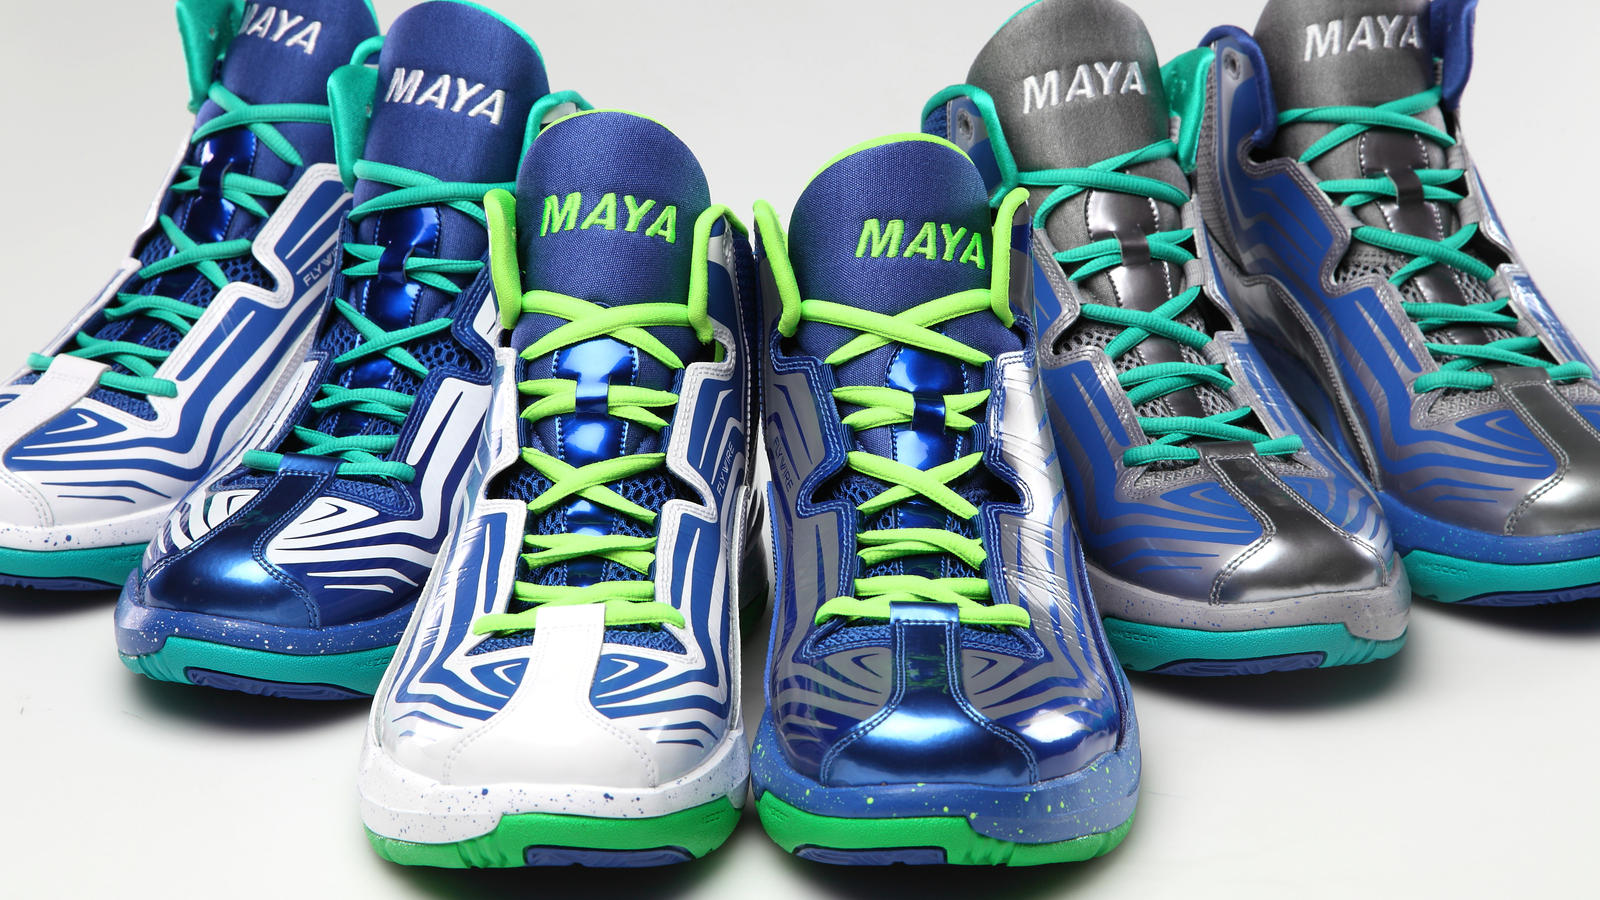 897471da73c Maya Moore Steps Out in Jordan Brand PEs for New Season - Nike News